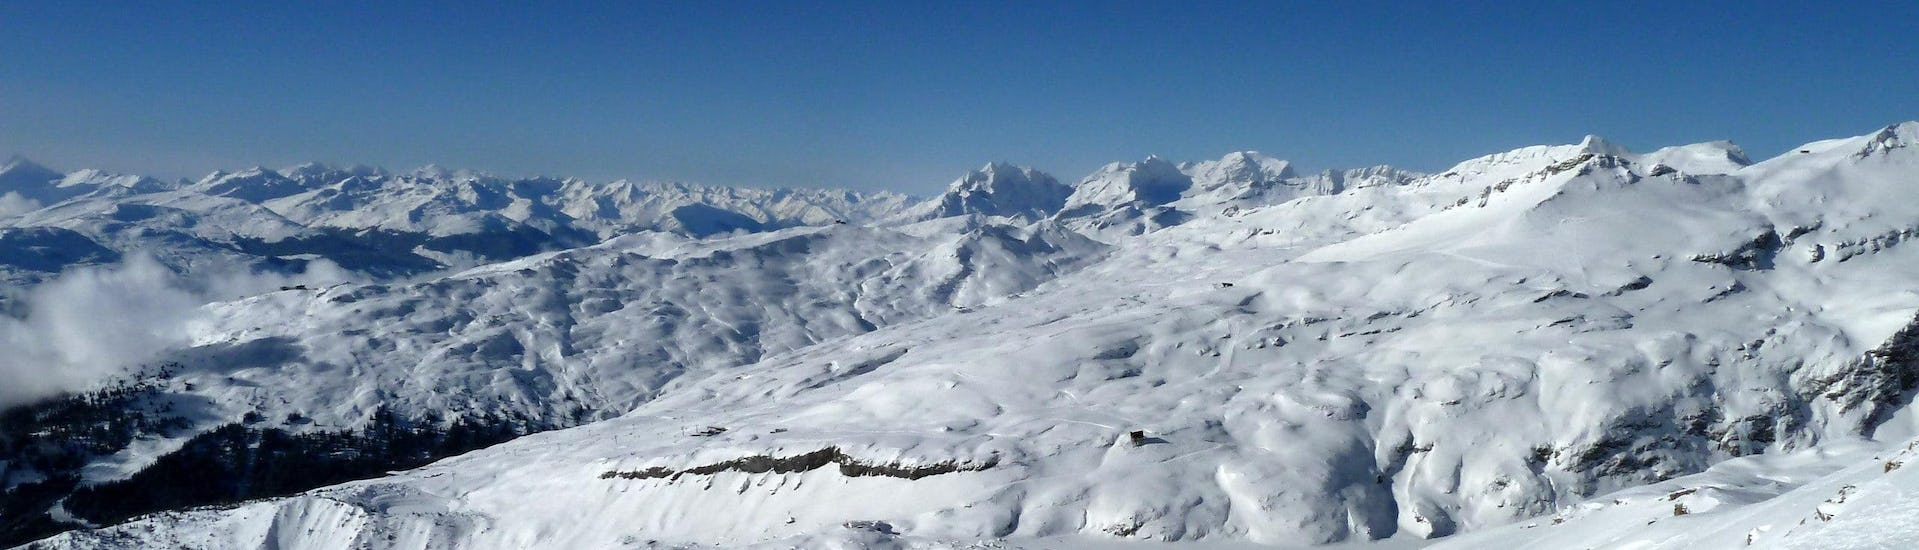 View over the sunny mountain landscape while learning to ski with the ski schools in Laax-Flims-Falera.